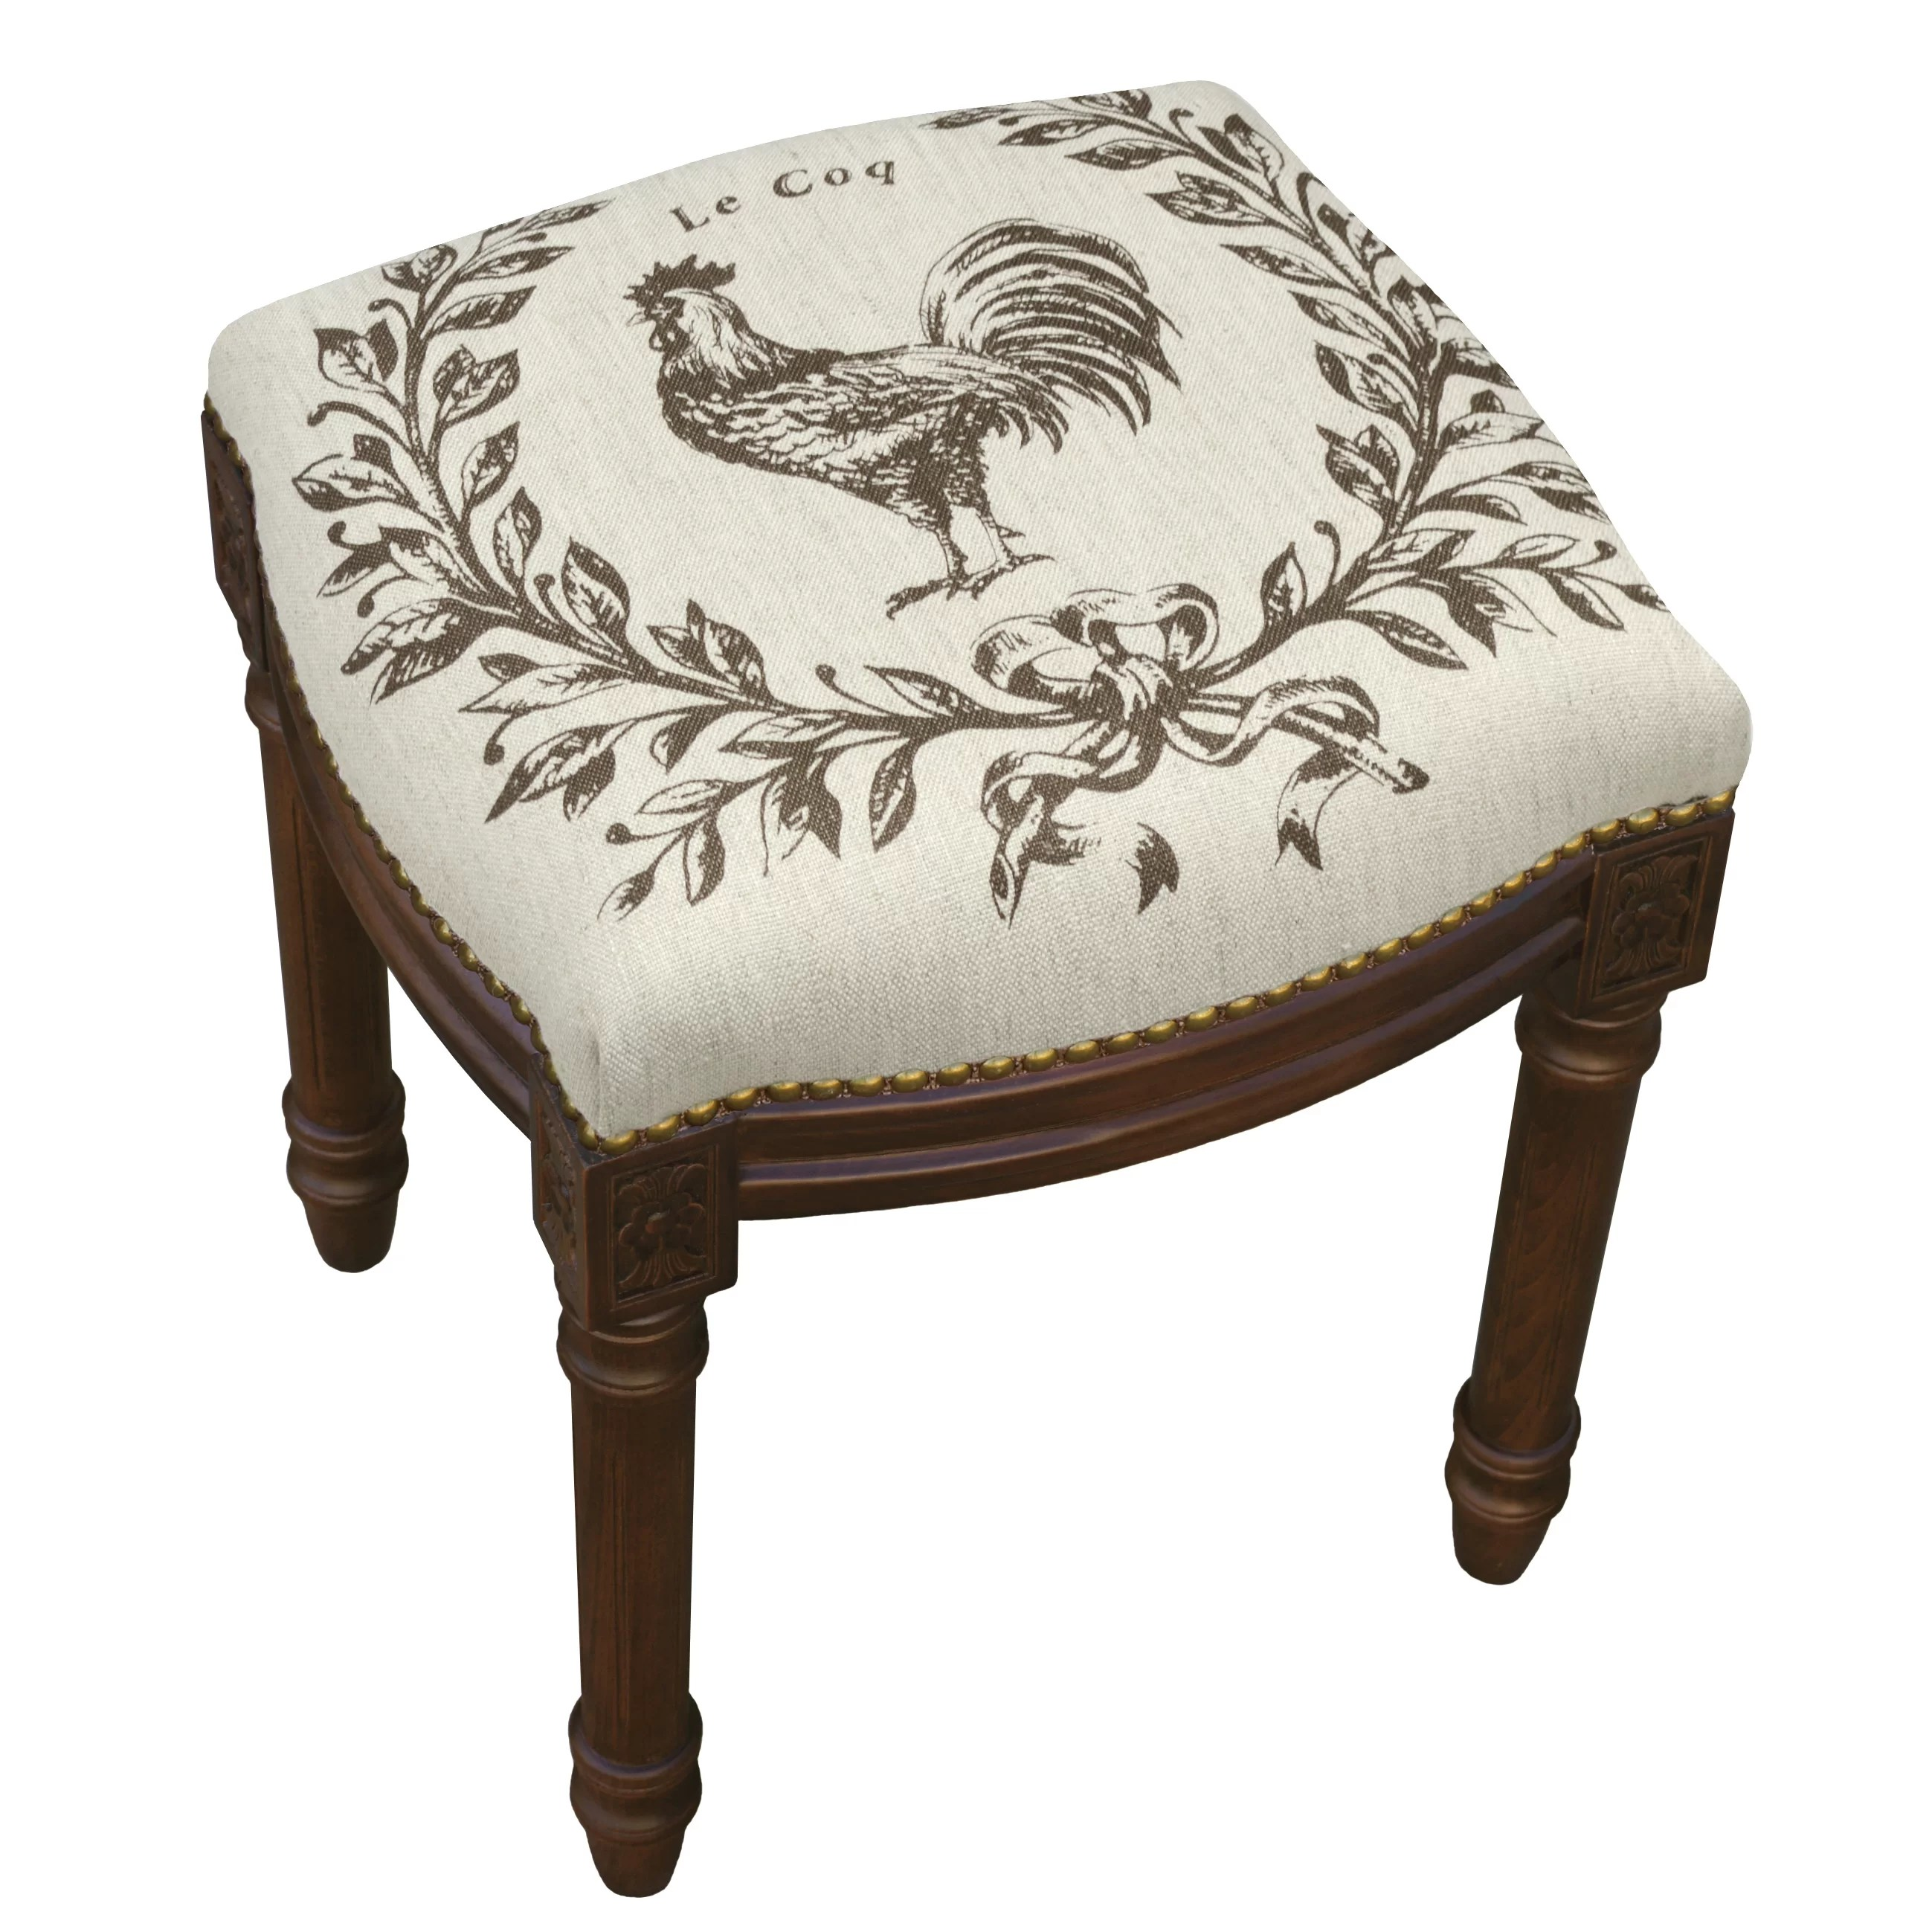 Upholstered Vanity Chair 123 Creations Rooster Linen Upholstered Vanity Stool With